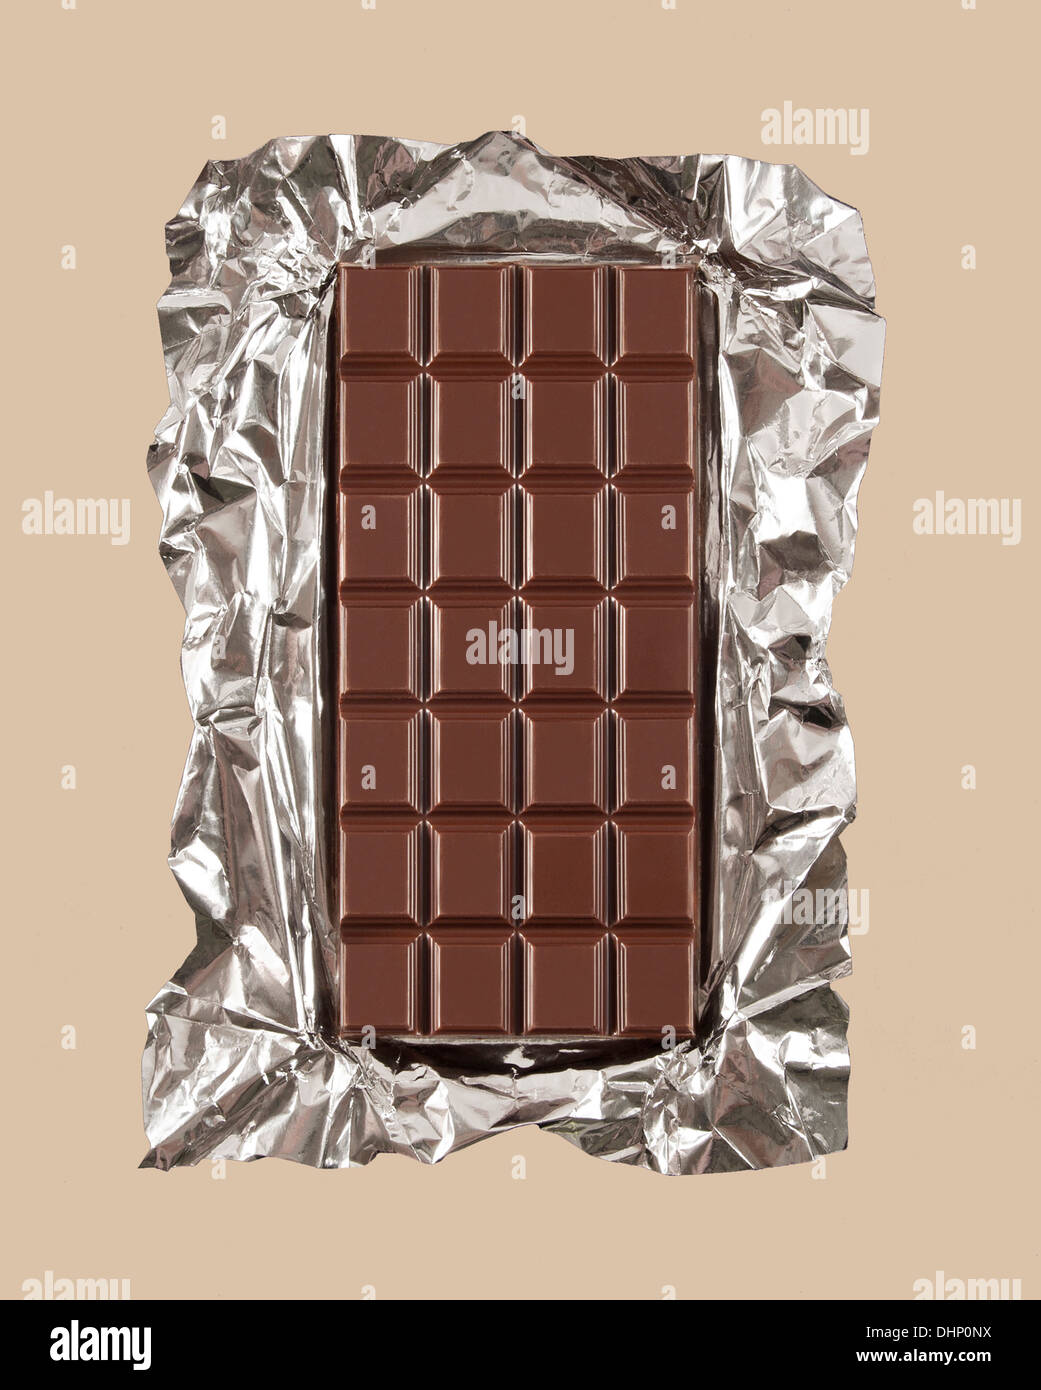 Chocolate candy bar with foil wrapper unwrapped - Stock Image